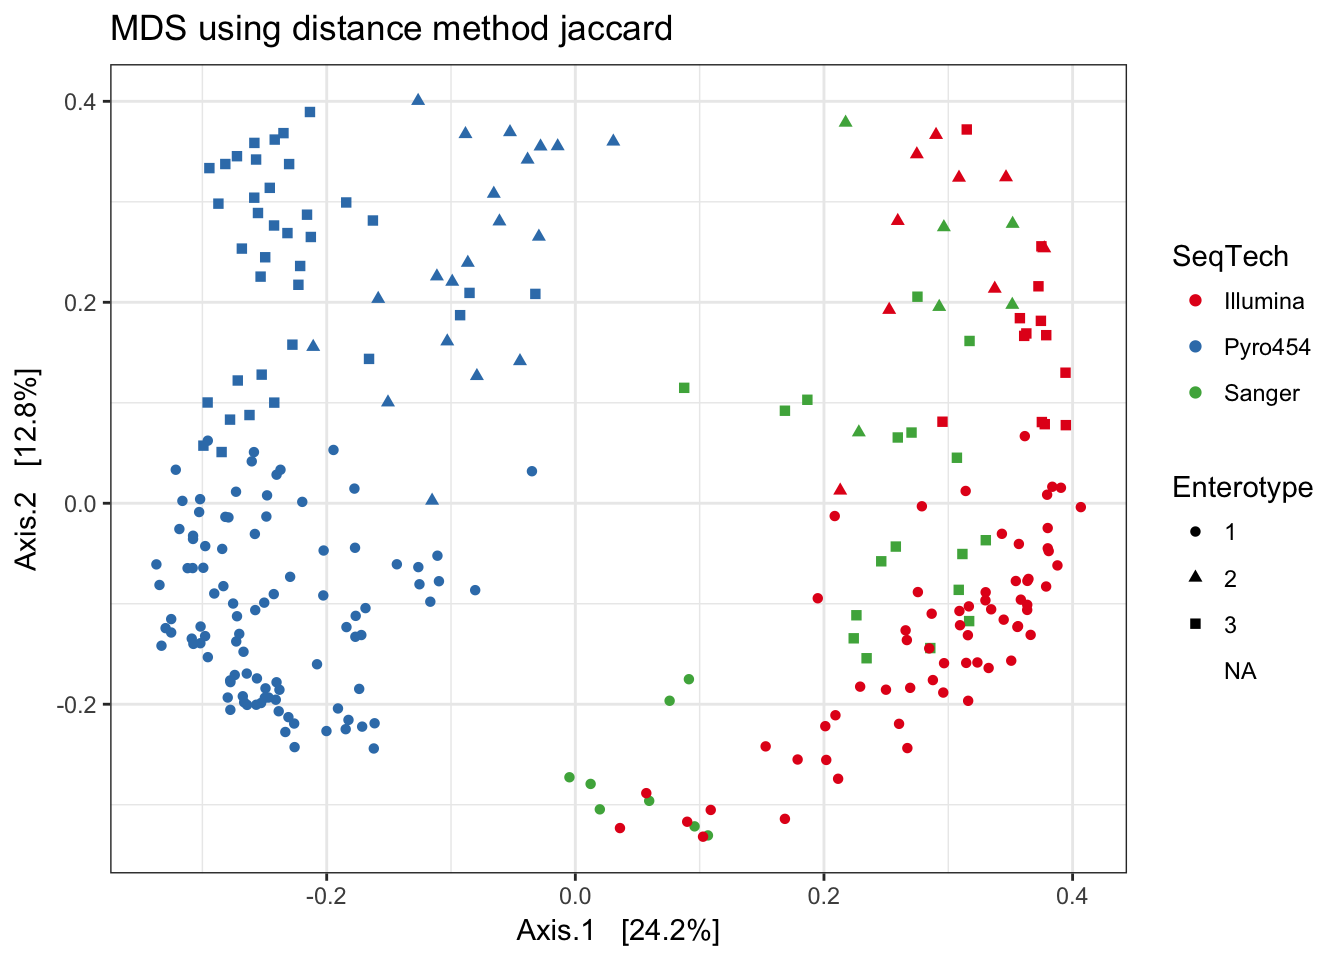 The distance function in phyloseq